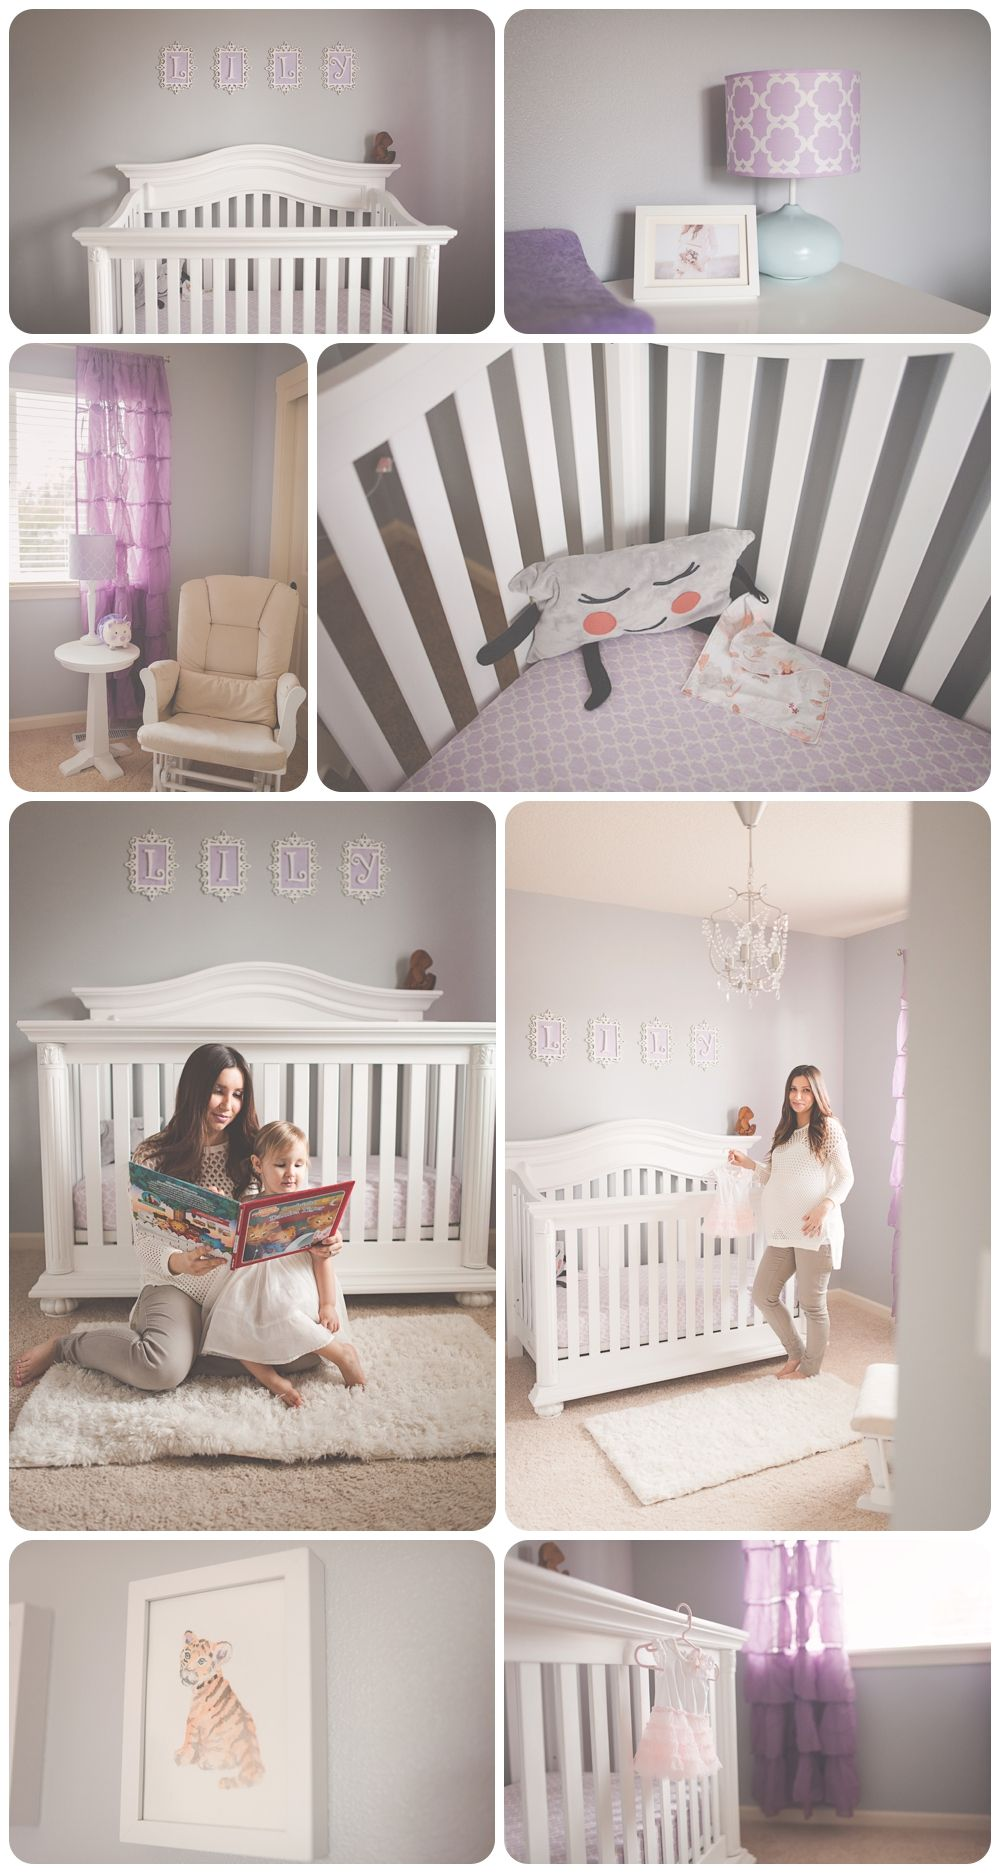 Nursery Shots Lifestyle Maternity Session Vancouver Wa Portland Or Photographer Brittany Chandler Photography